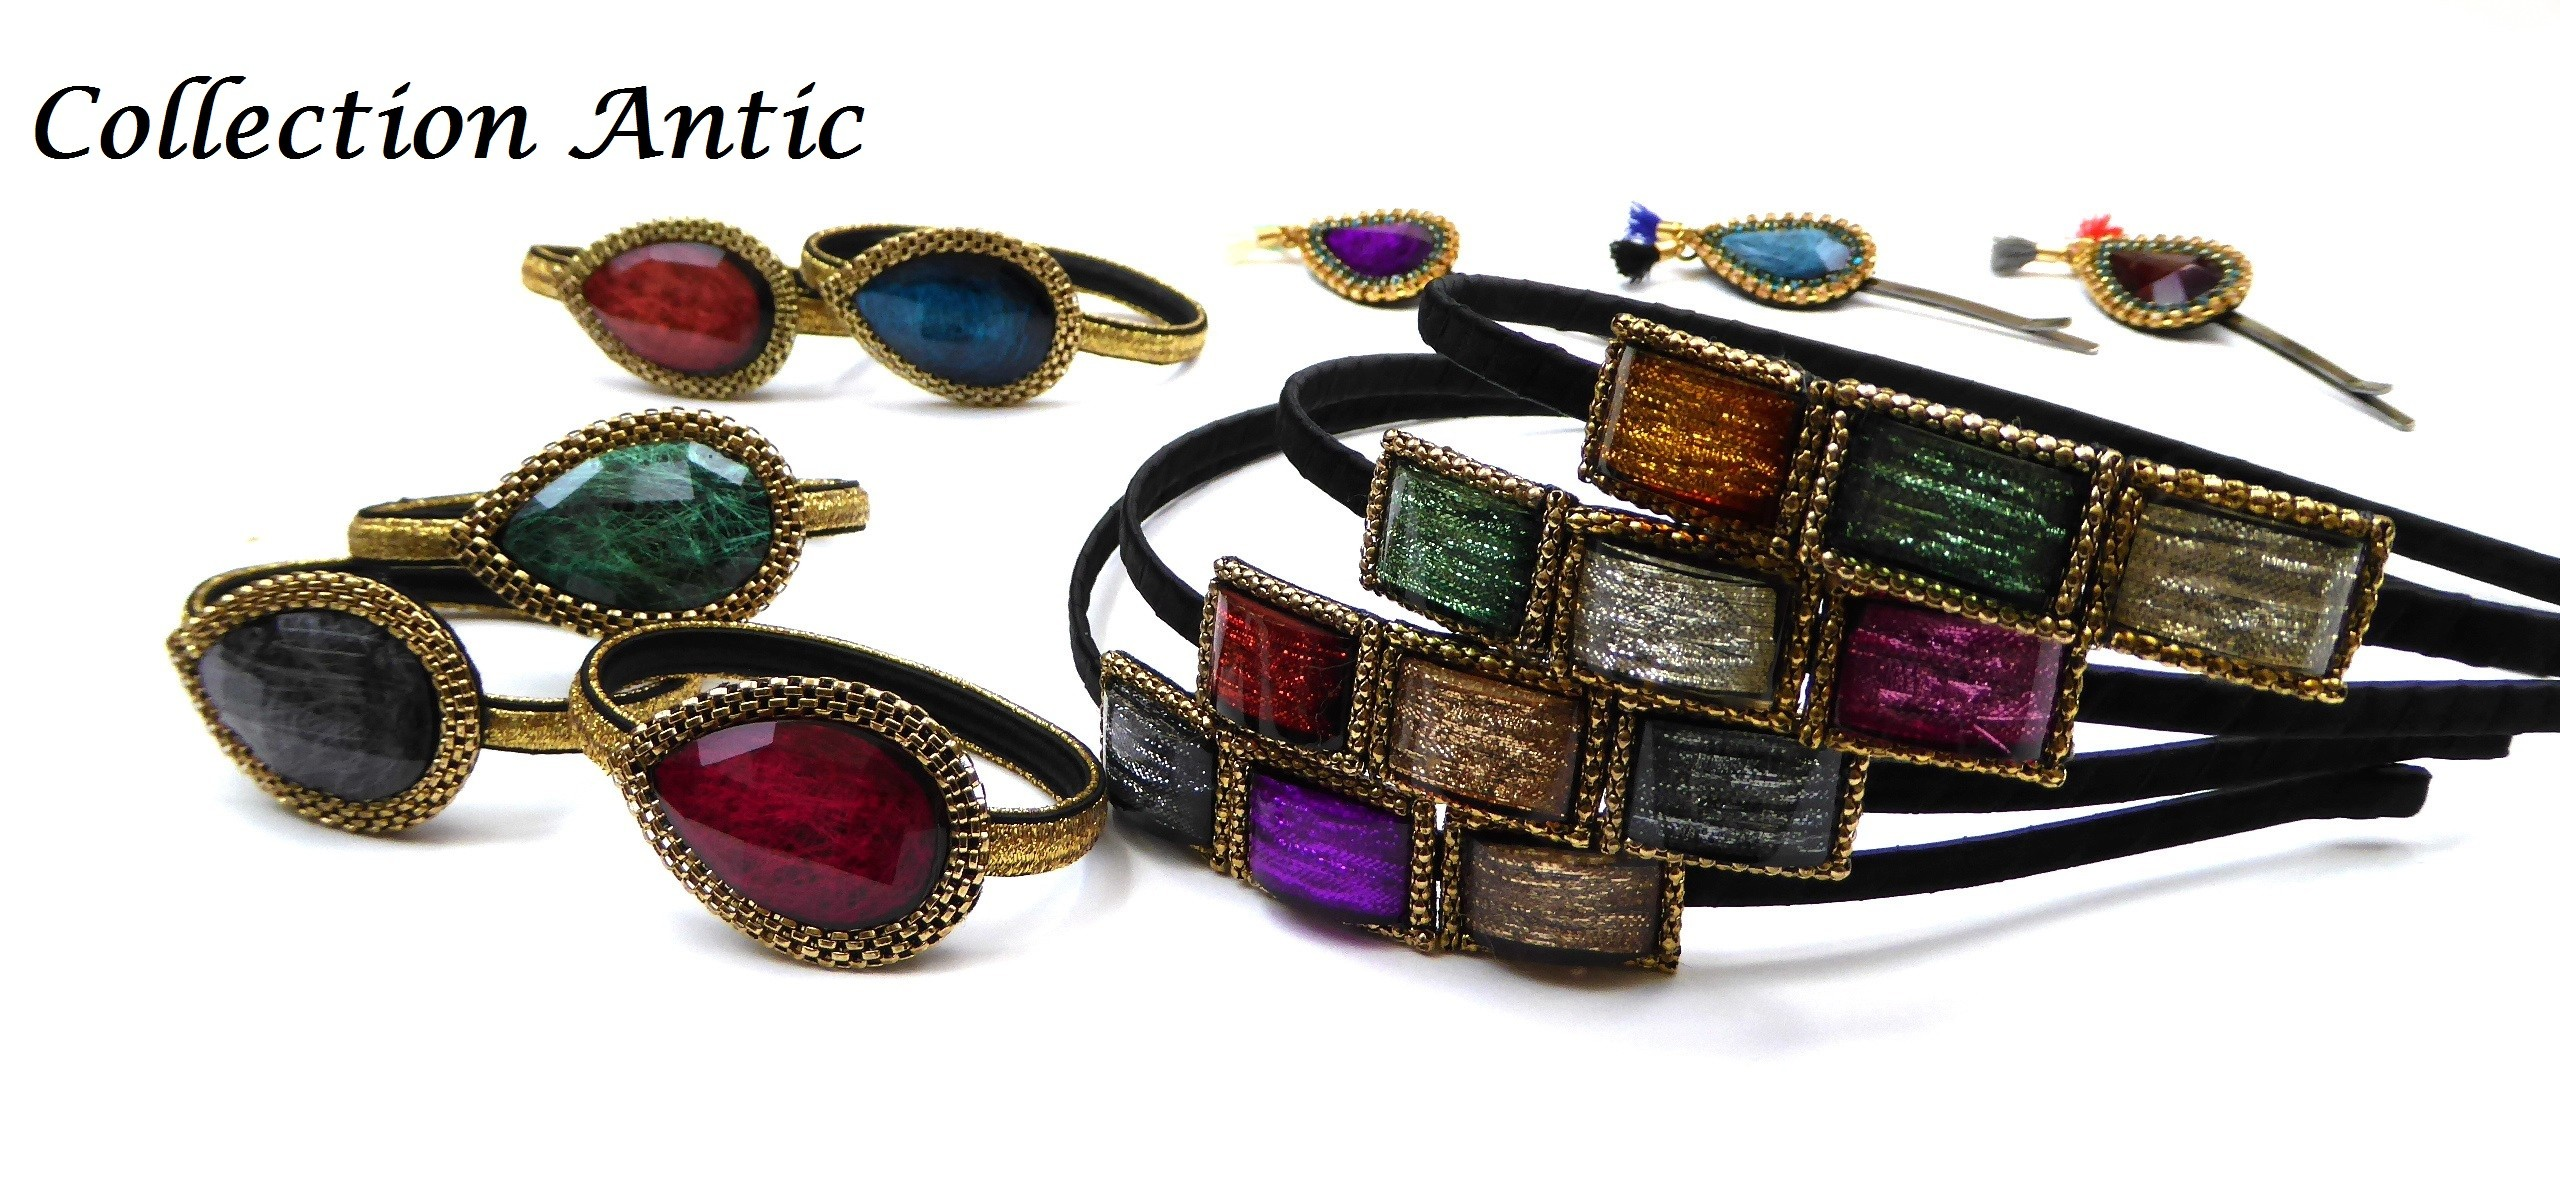 Collection Antic